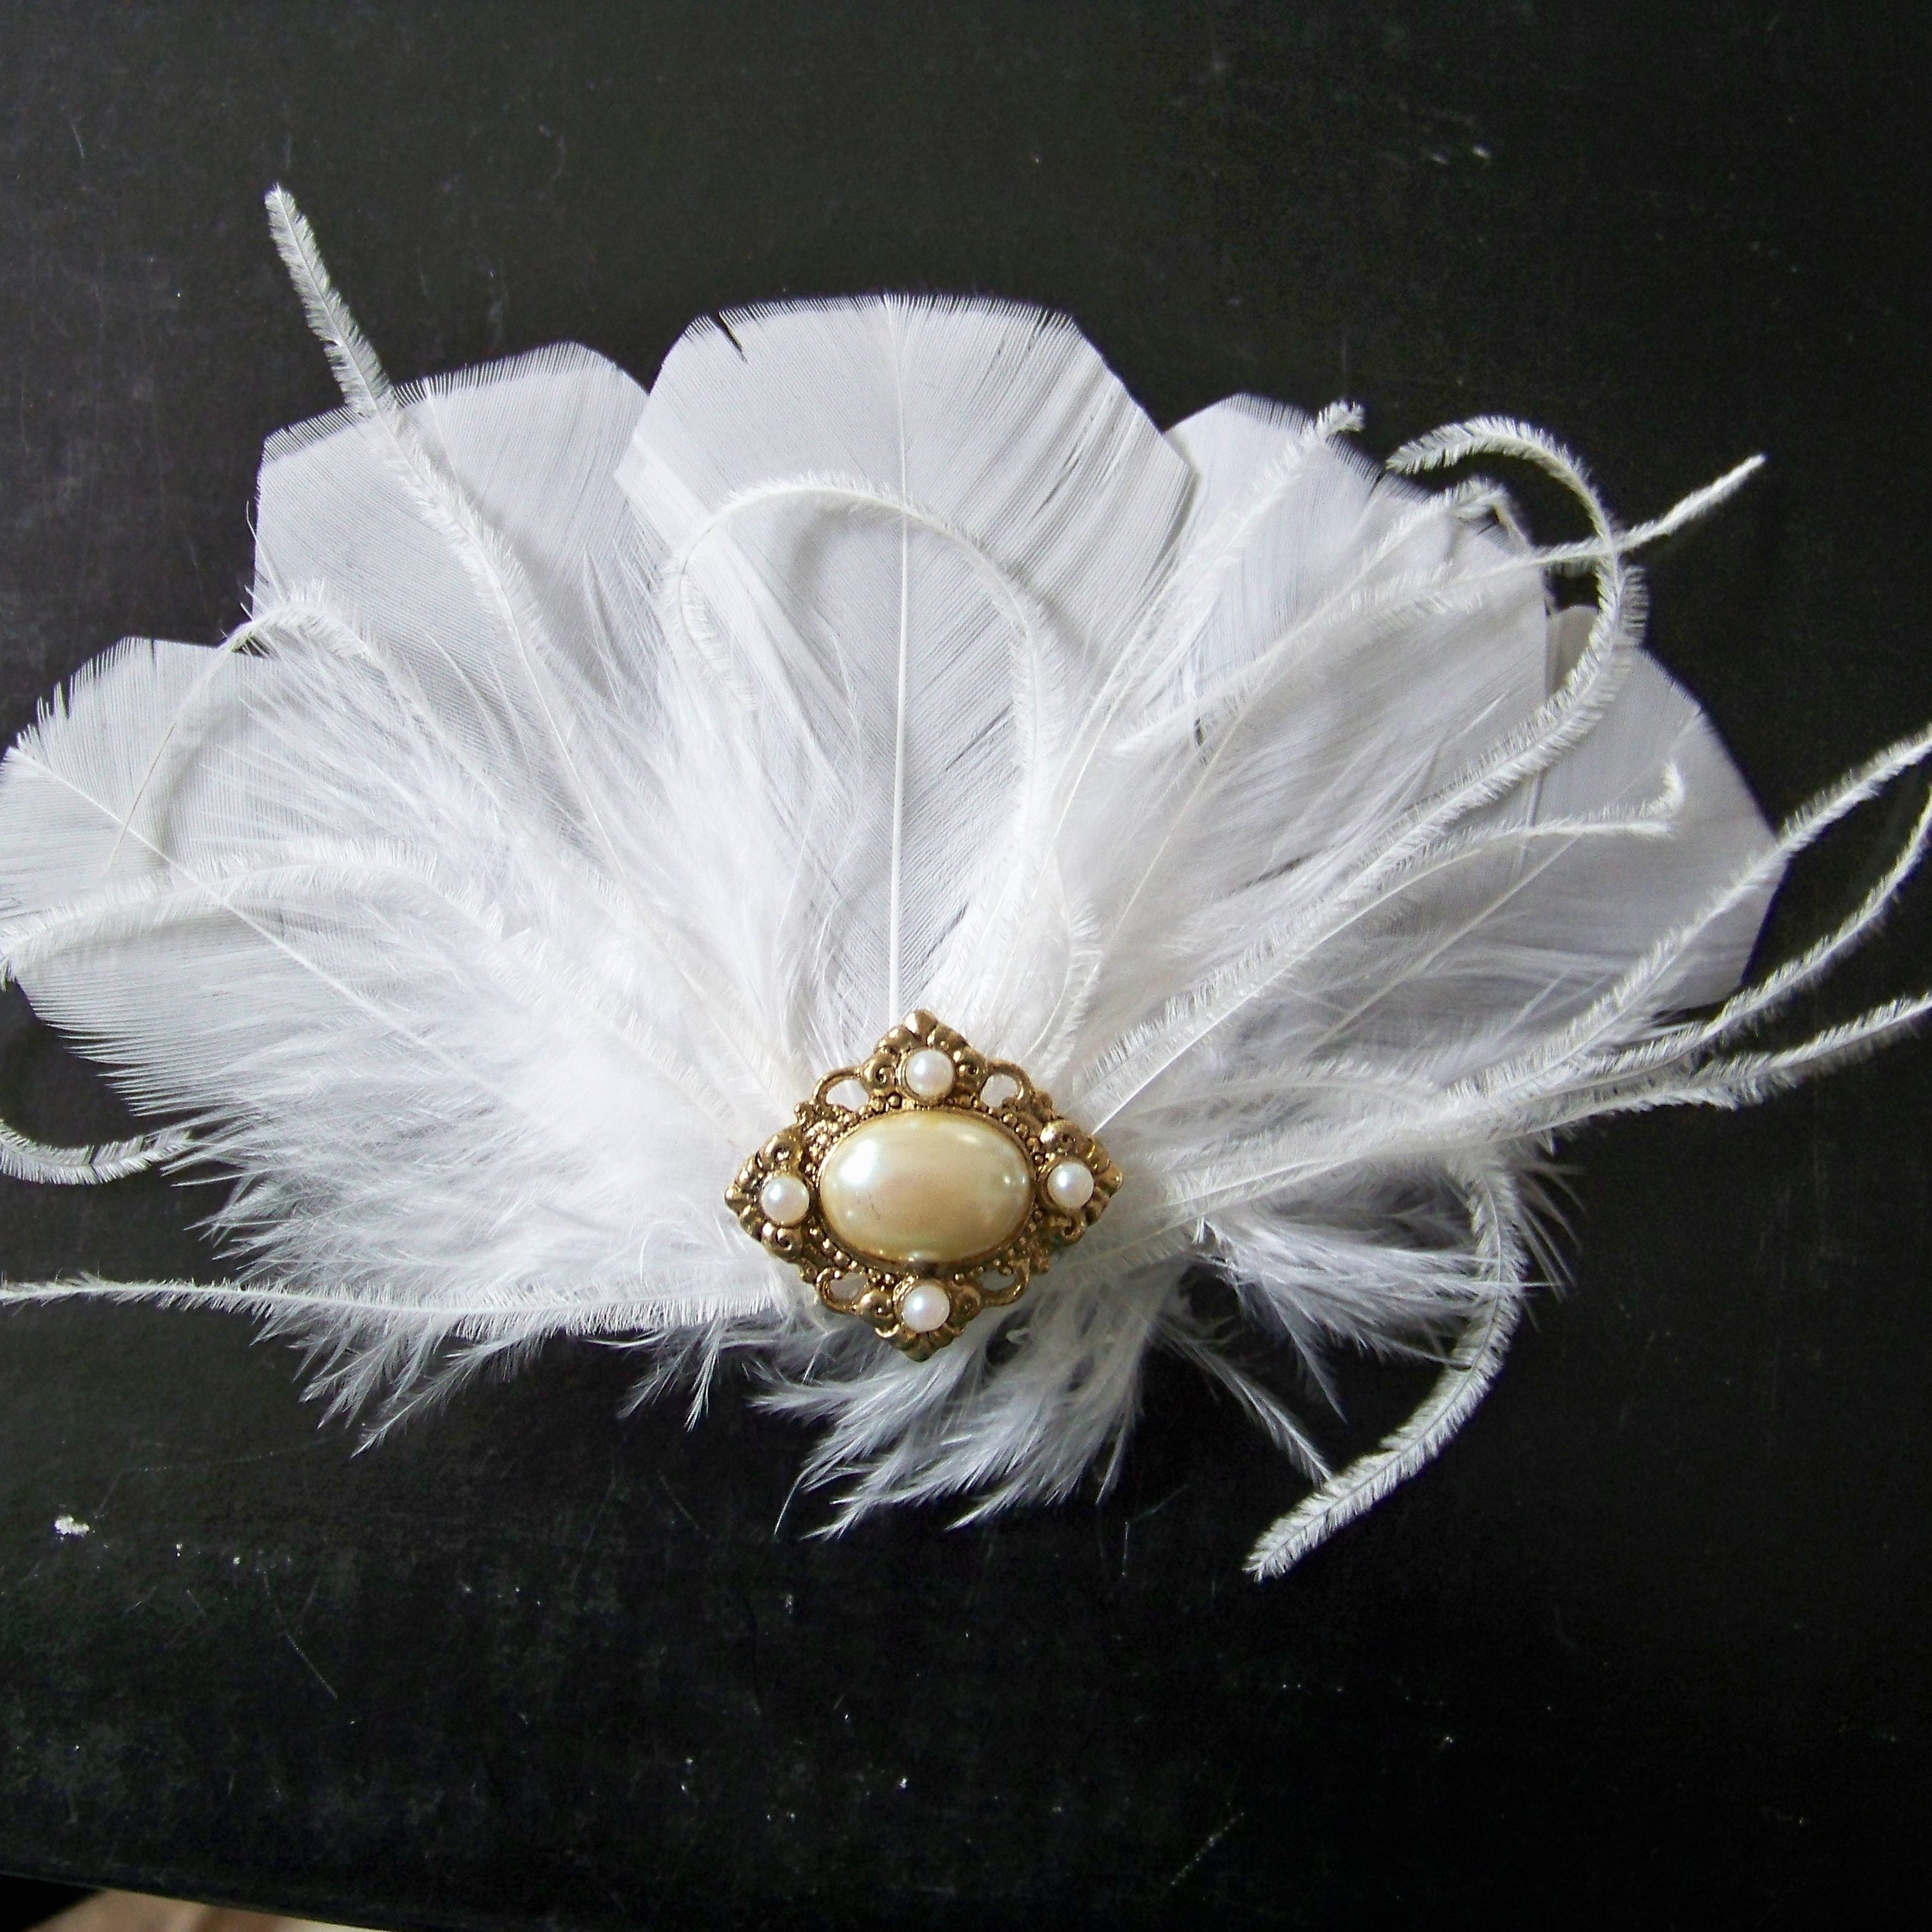 Beauty, Feathers, Vintage, Wedding, Hair, Bridal, Accessory, Fascinator, Barrette, Feather, Donnaella wedding accessories